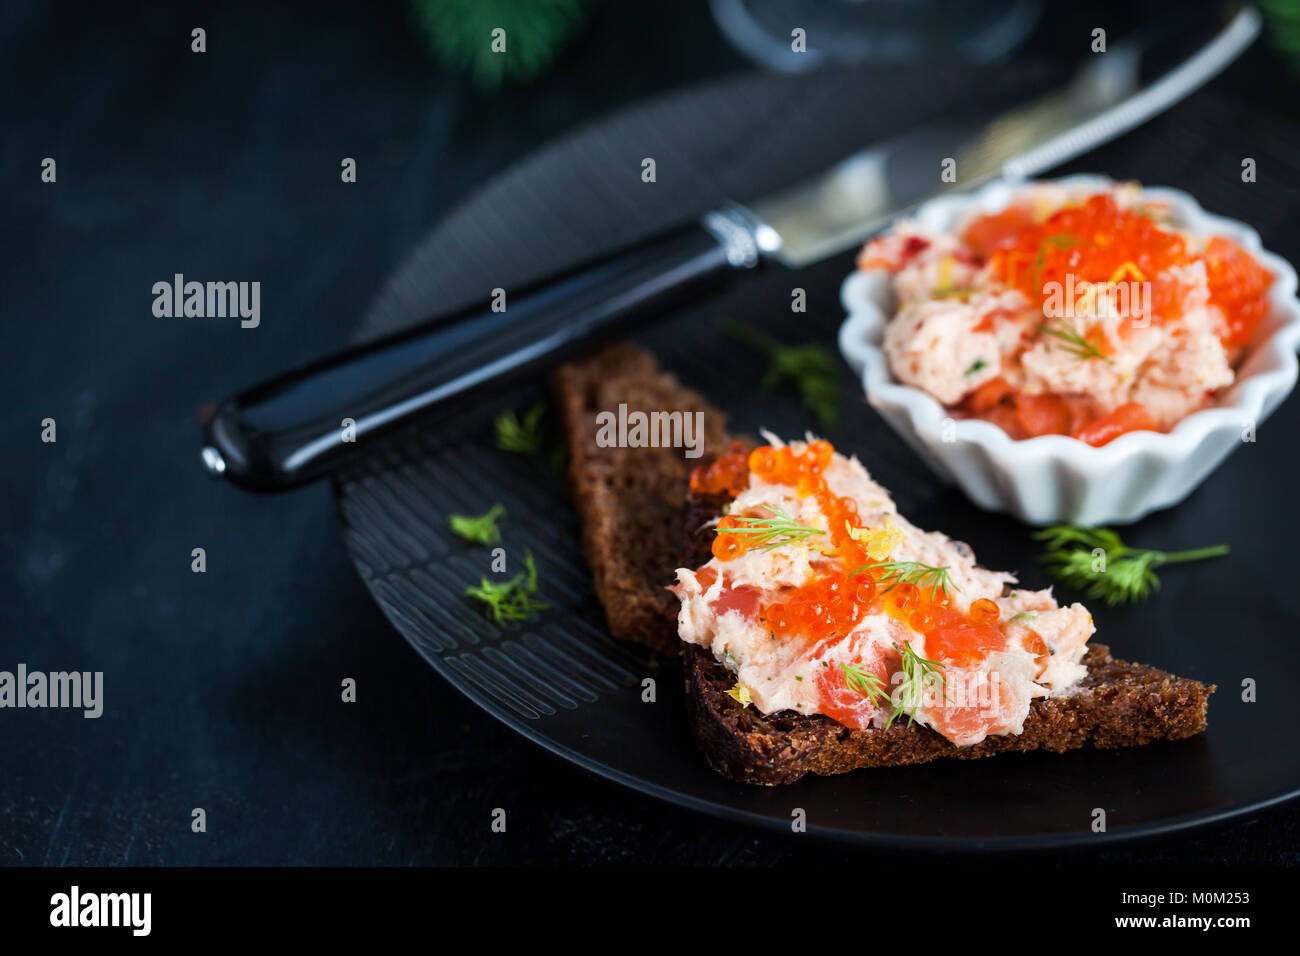 Salmon pate (rillettes) with red caviar served with sliced bread - Stock Image